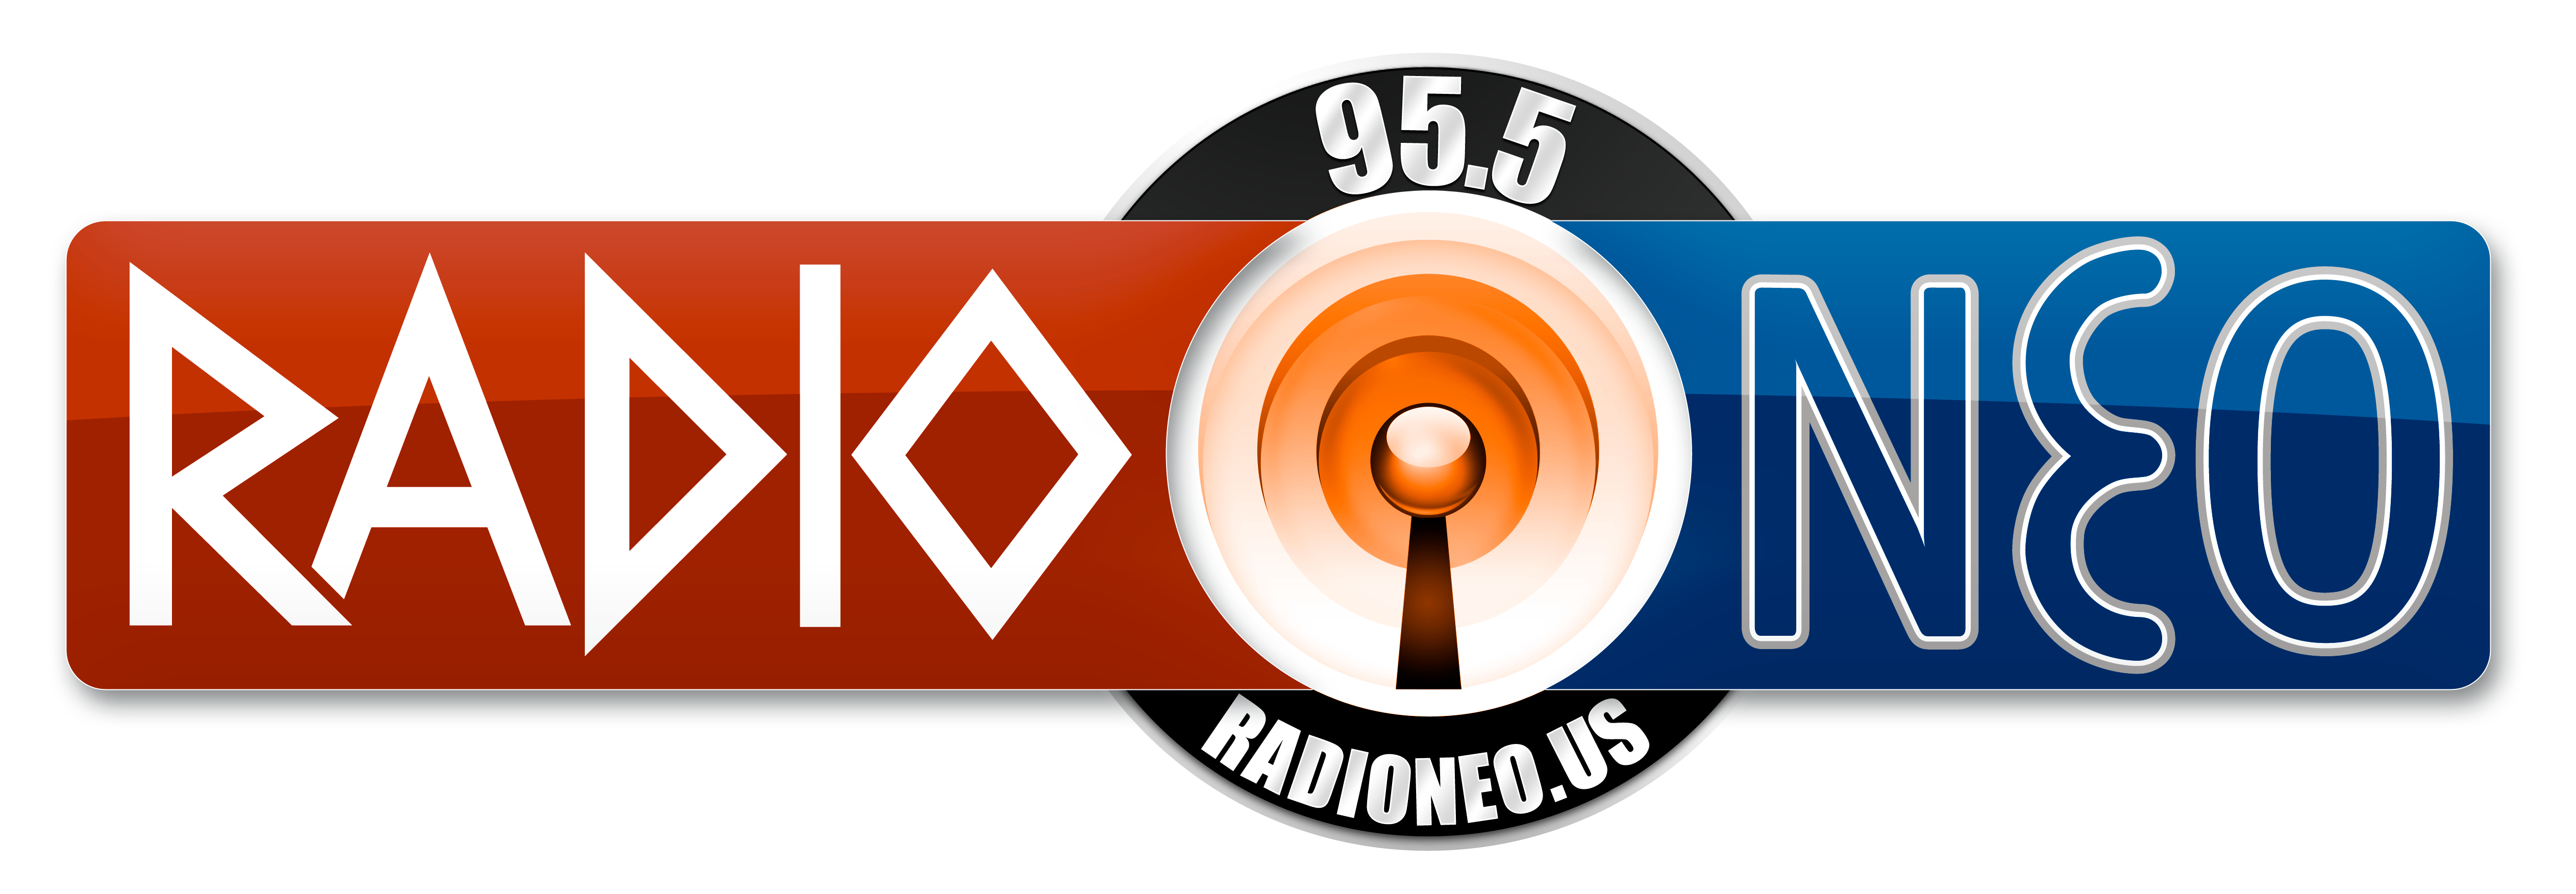 European radio stations streaming live on the internet